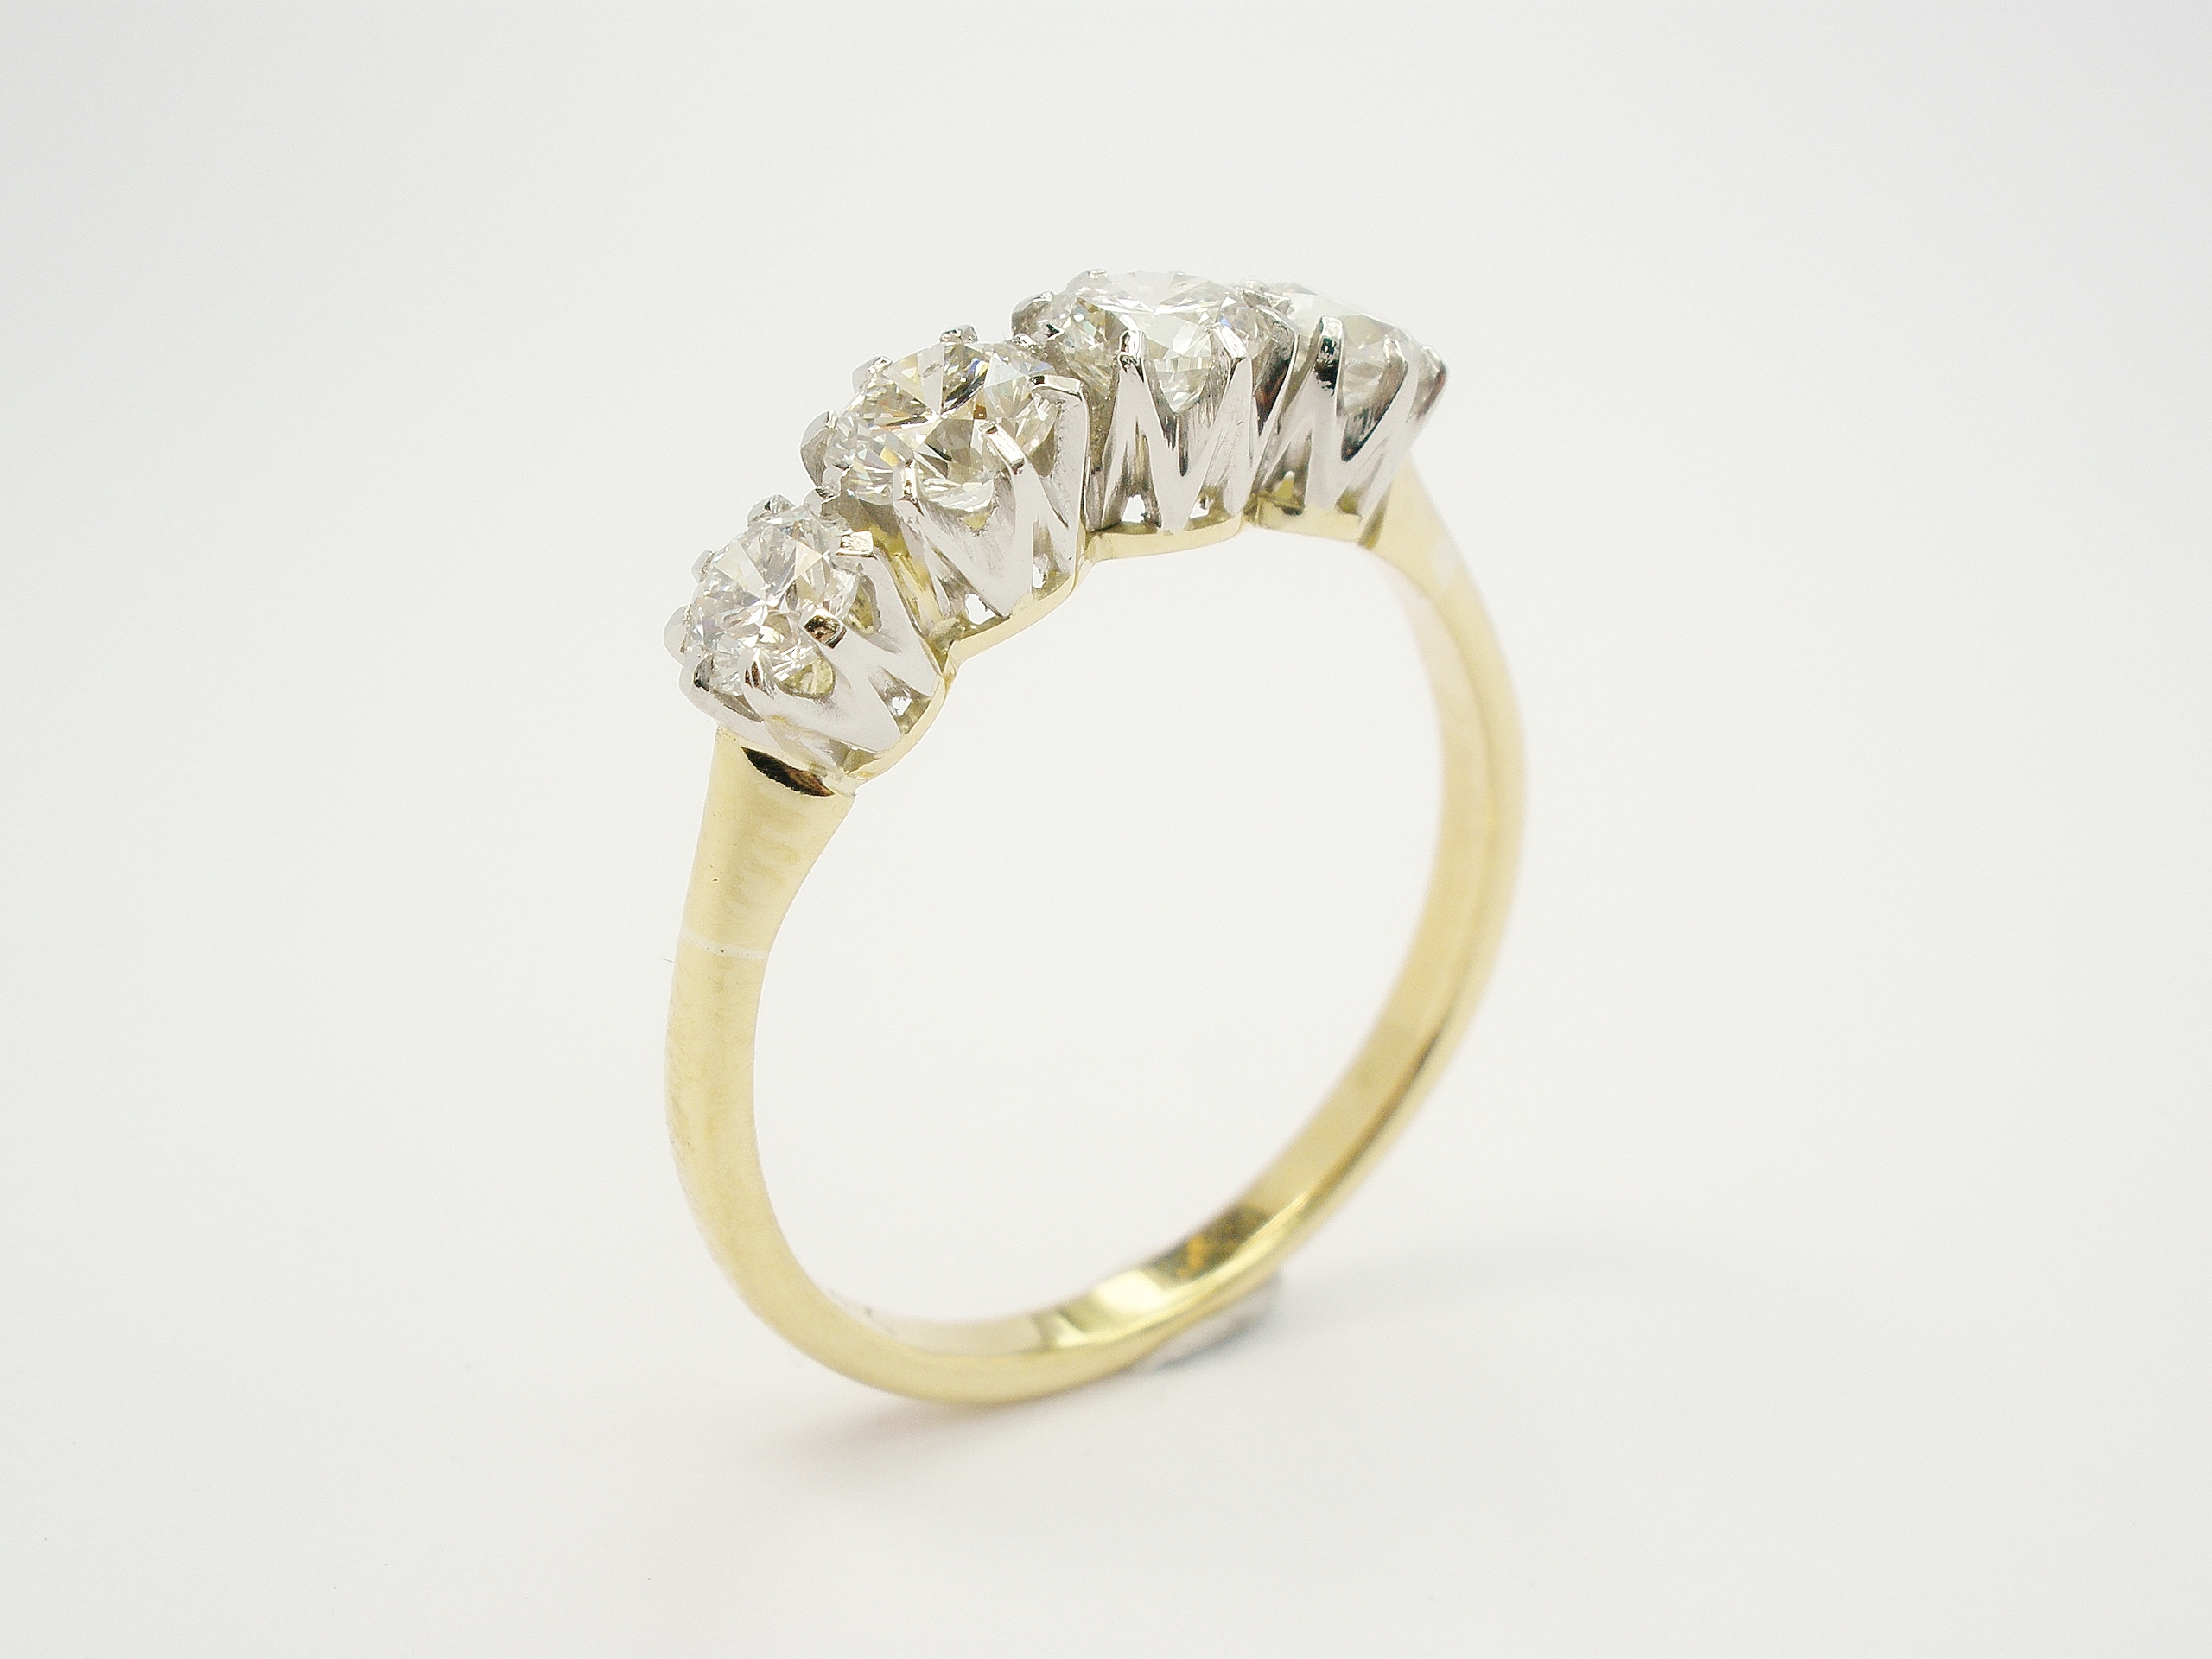 My remake of the 4 stone round brilliant cut diamond ring.